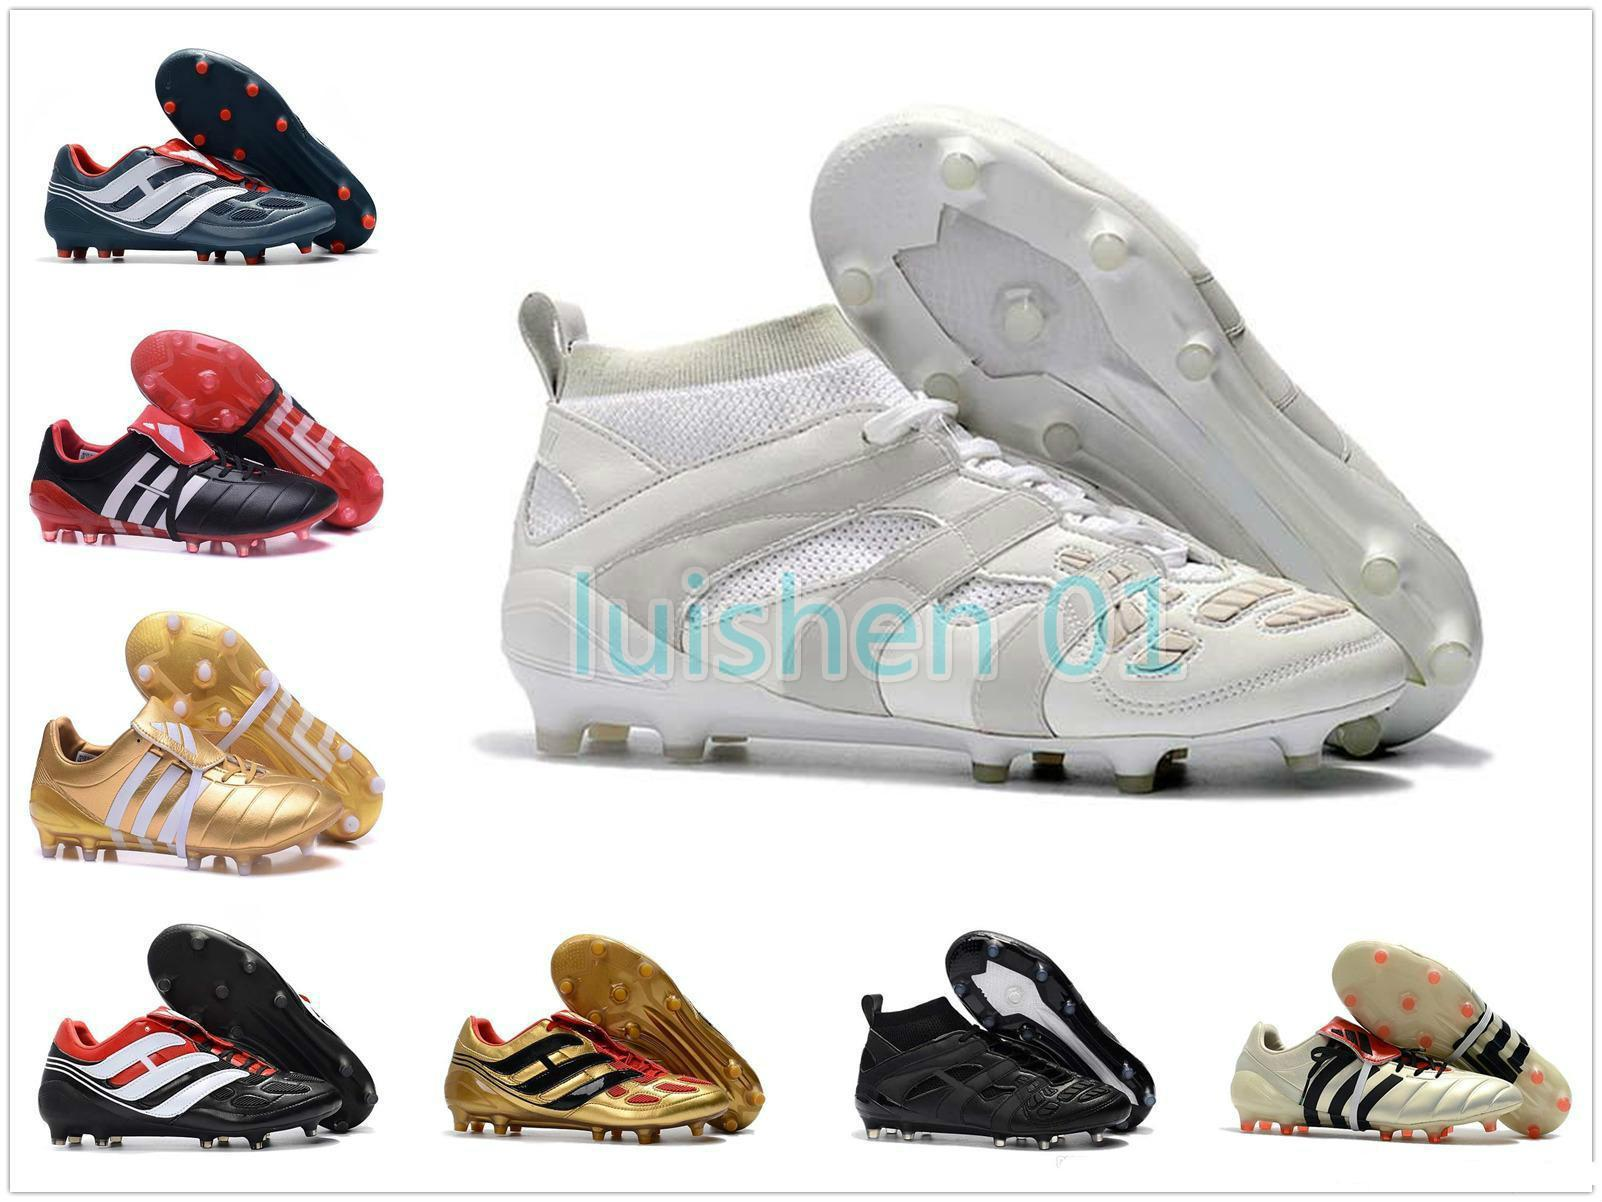 Soccer Mens Turf Cleats Indoor Soccer Shoes Crampons De Football Boots Predator Mania Precision Accelerator Db David Beckham Fg Tf Ic A009